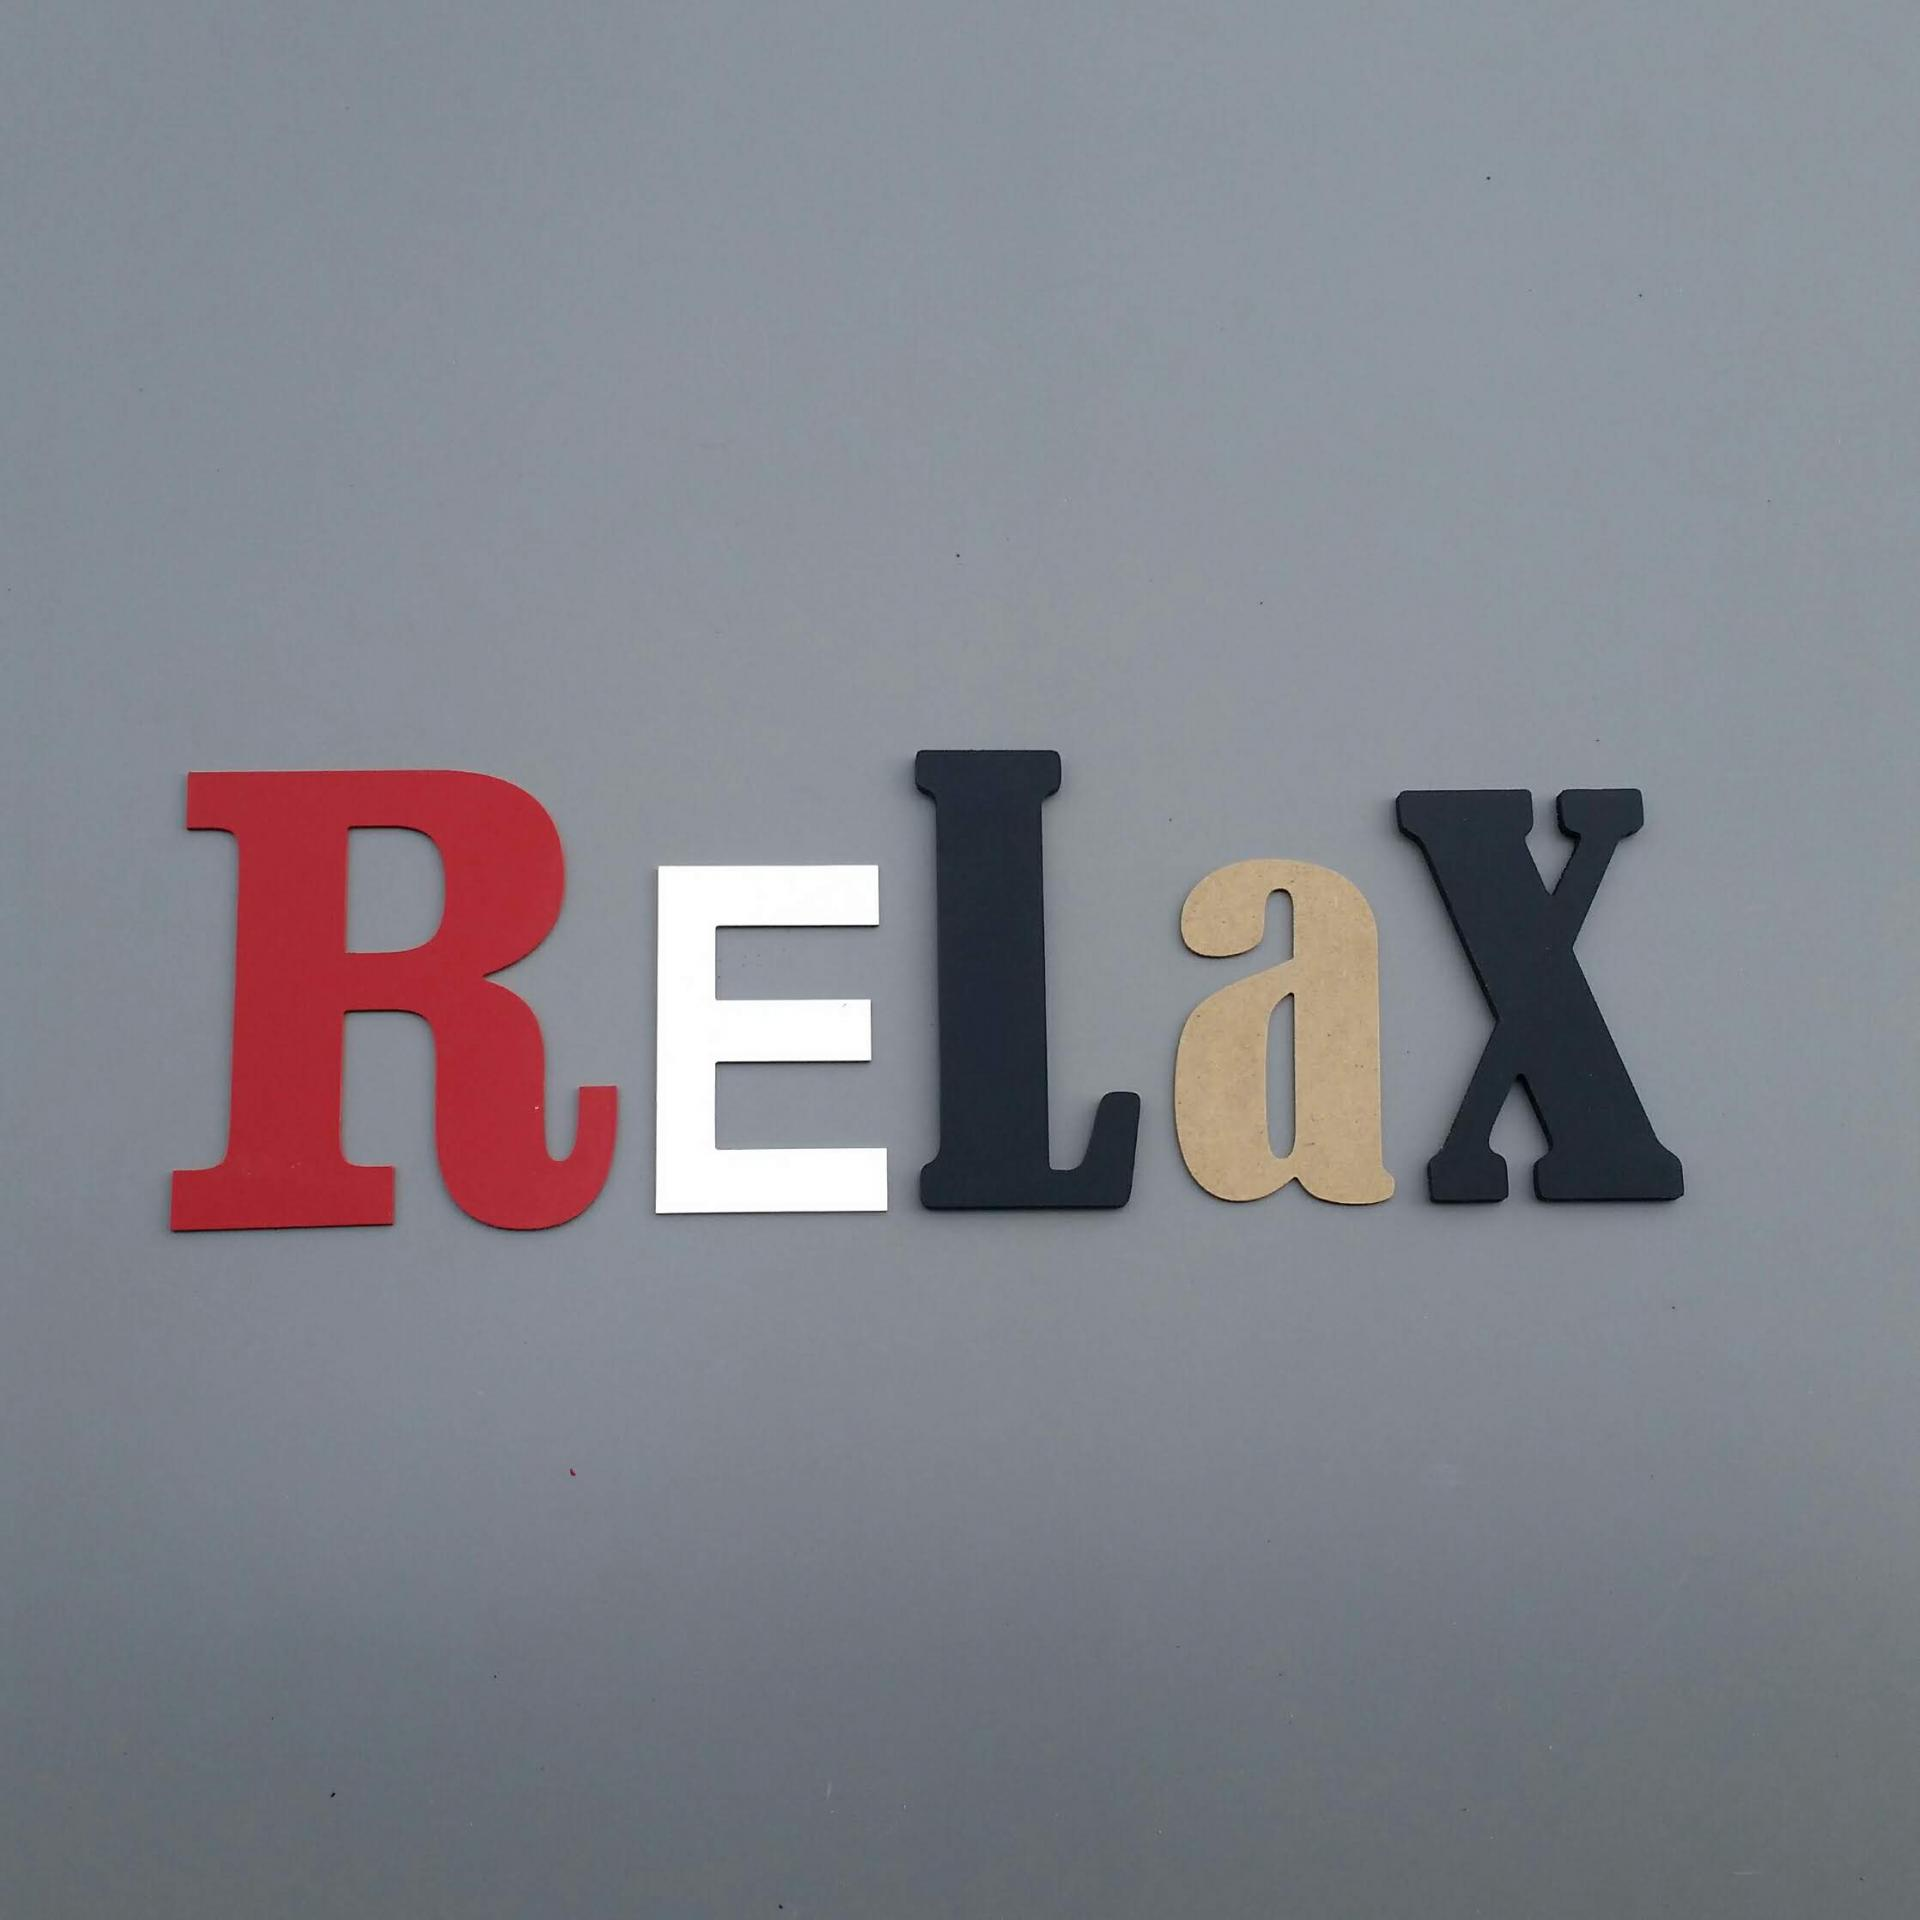 Lettres decoratives relax 271020 7